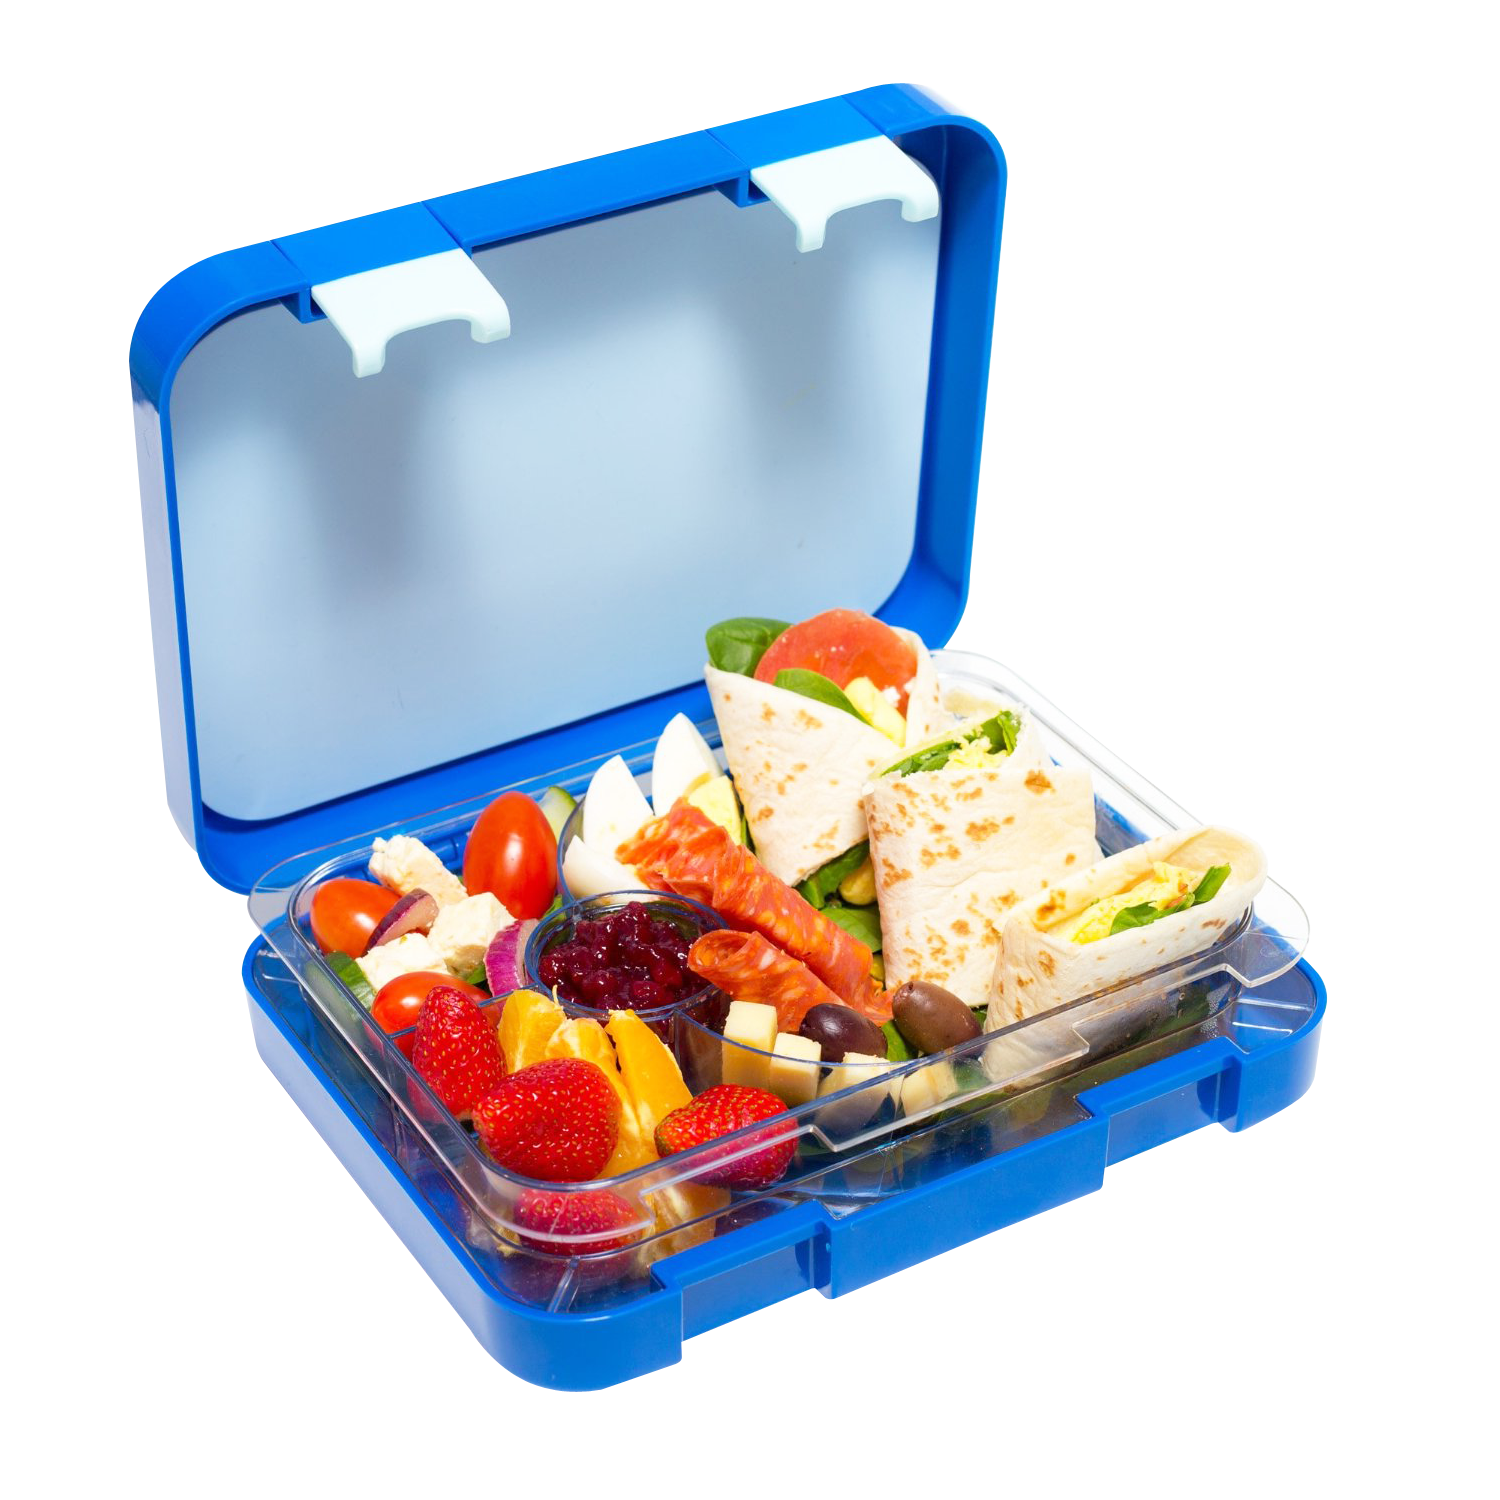 Lunch png transparent images. Lunchbox clipart sandwich box